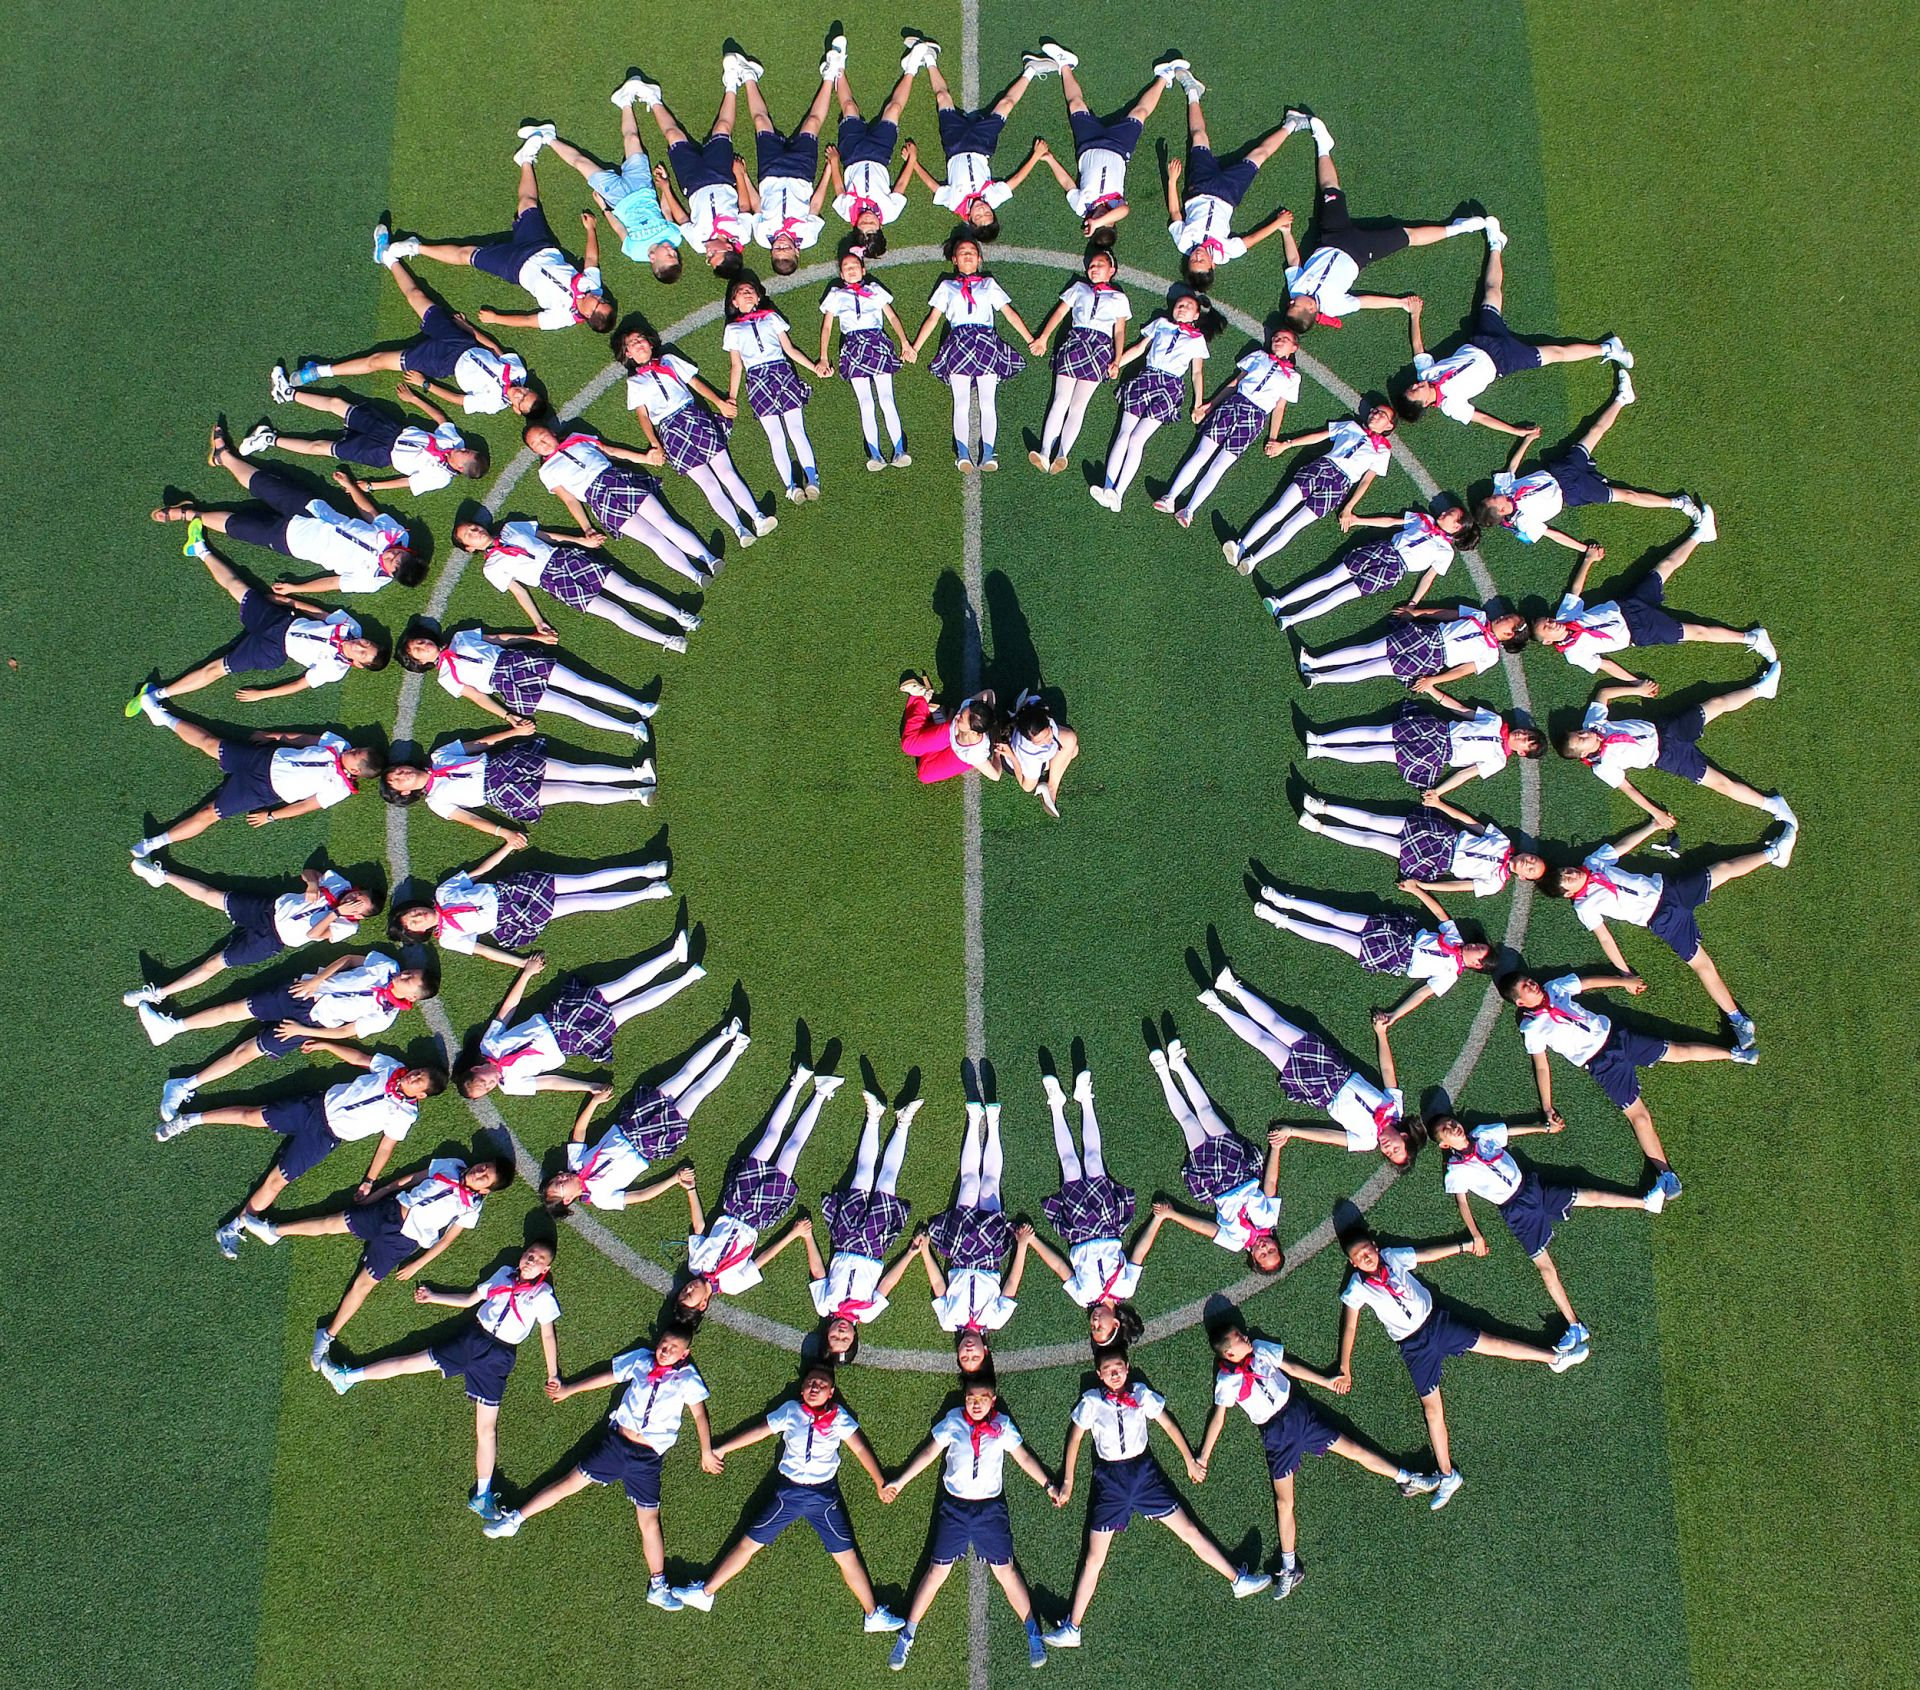 School Aerial Group Photo